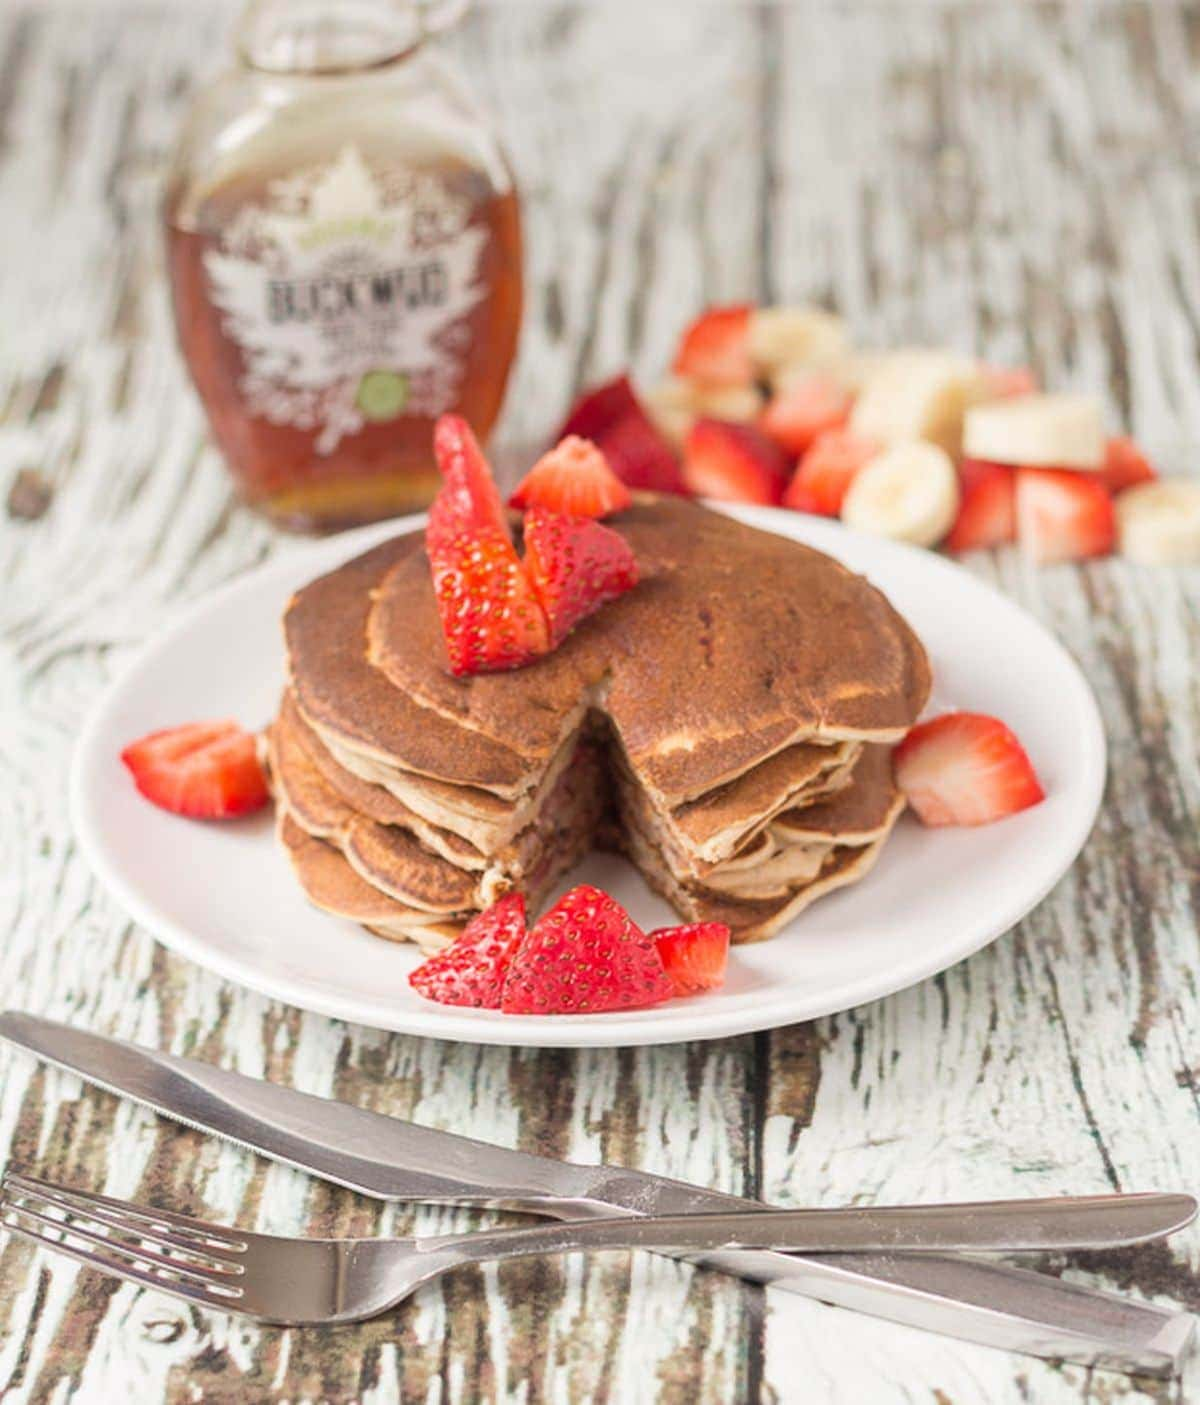 A stack of strawberry banana valentines pancakes on a plate topped with chopped strawberries. Knife and fork to the front. A bottle of maple syrup in the background.